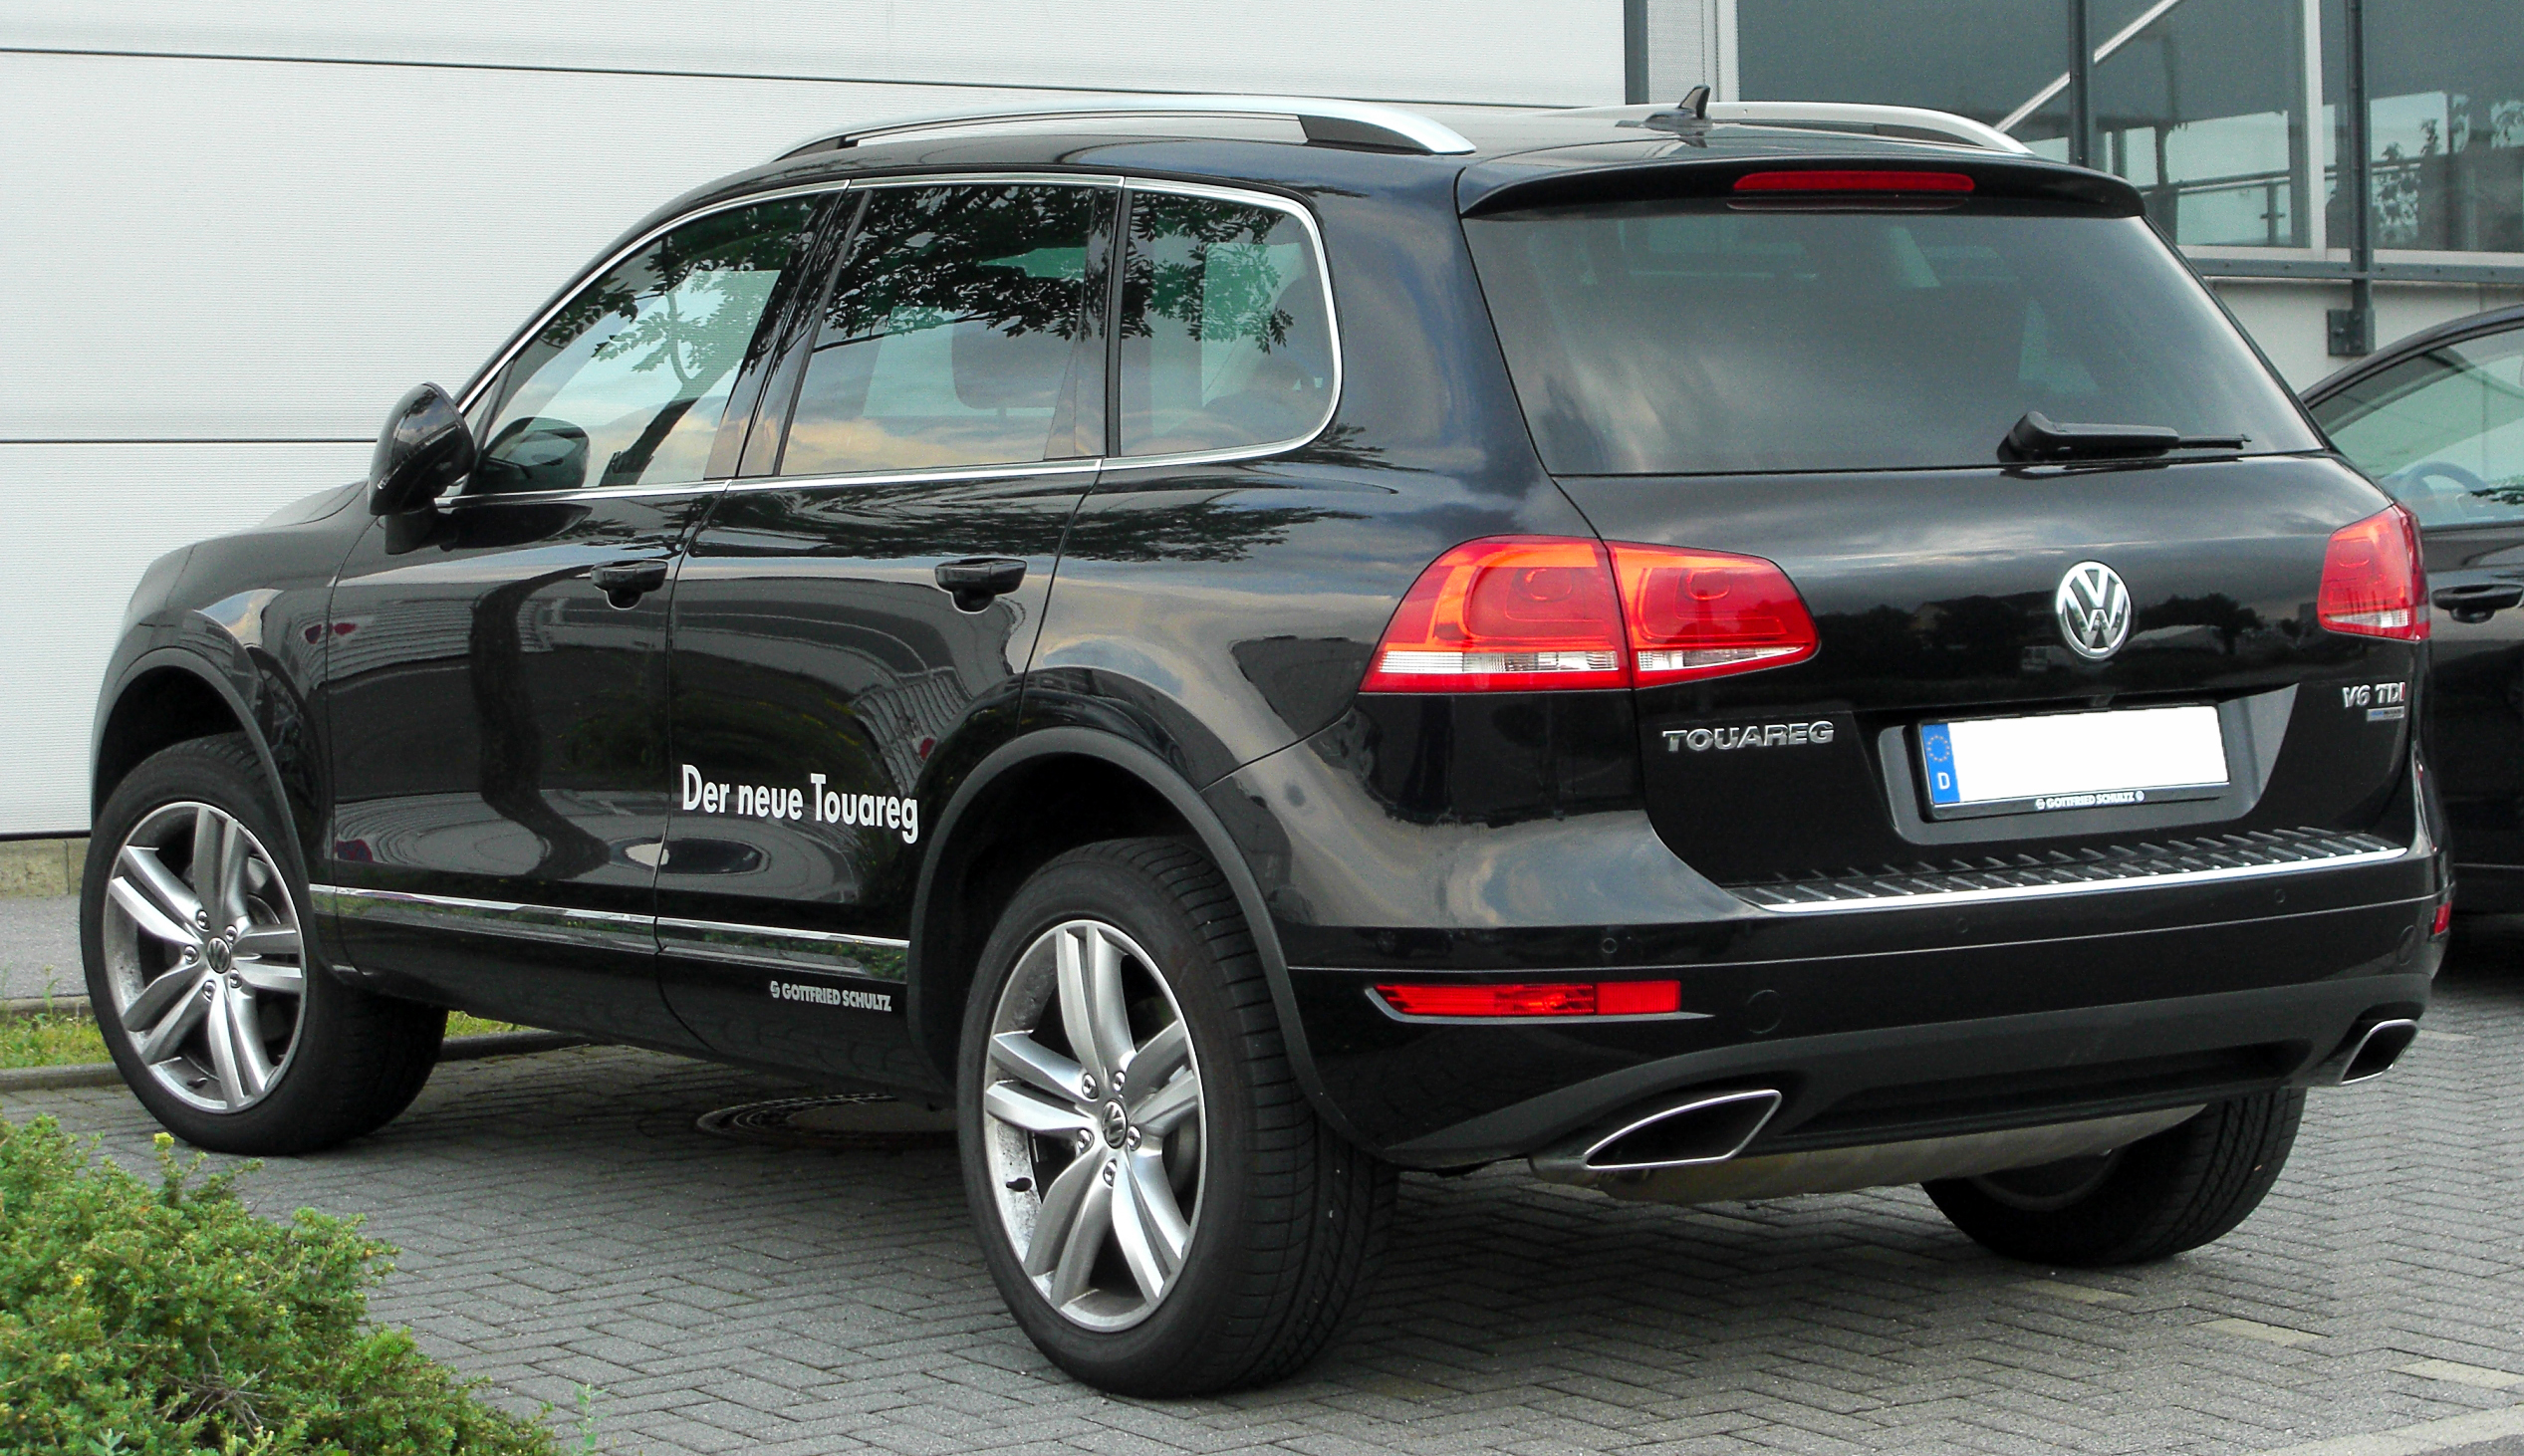 vw touareg v6 tdi technical details history photos on better parts ltd. Black Bedroom Furniture Sets. Home Design Ideas